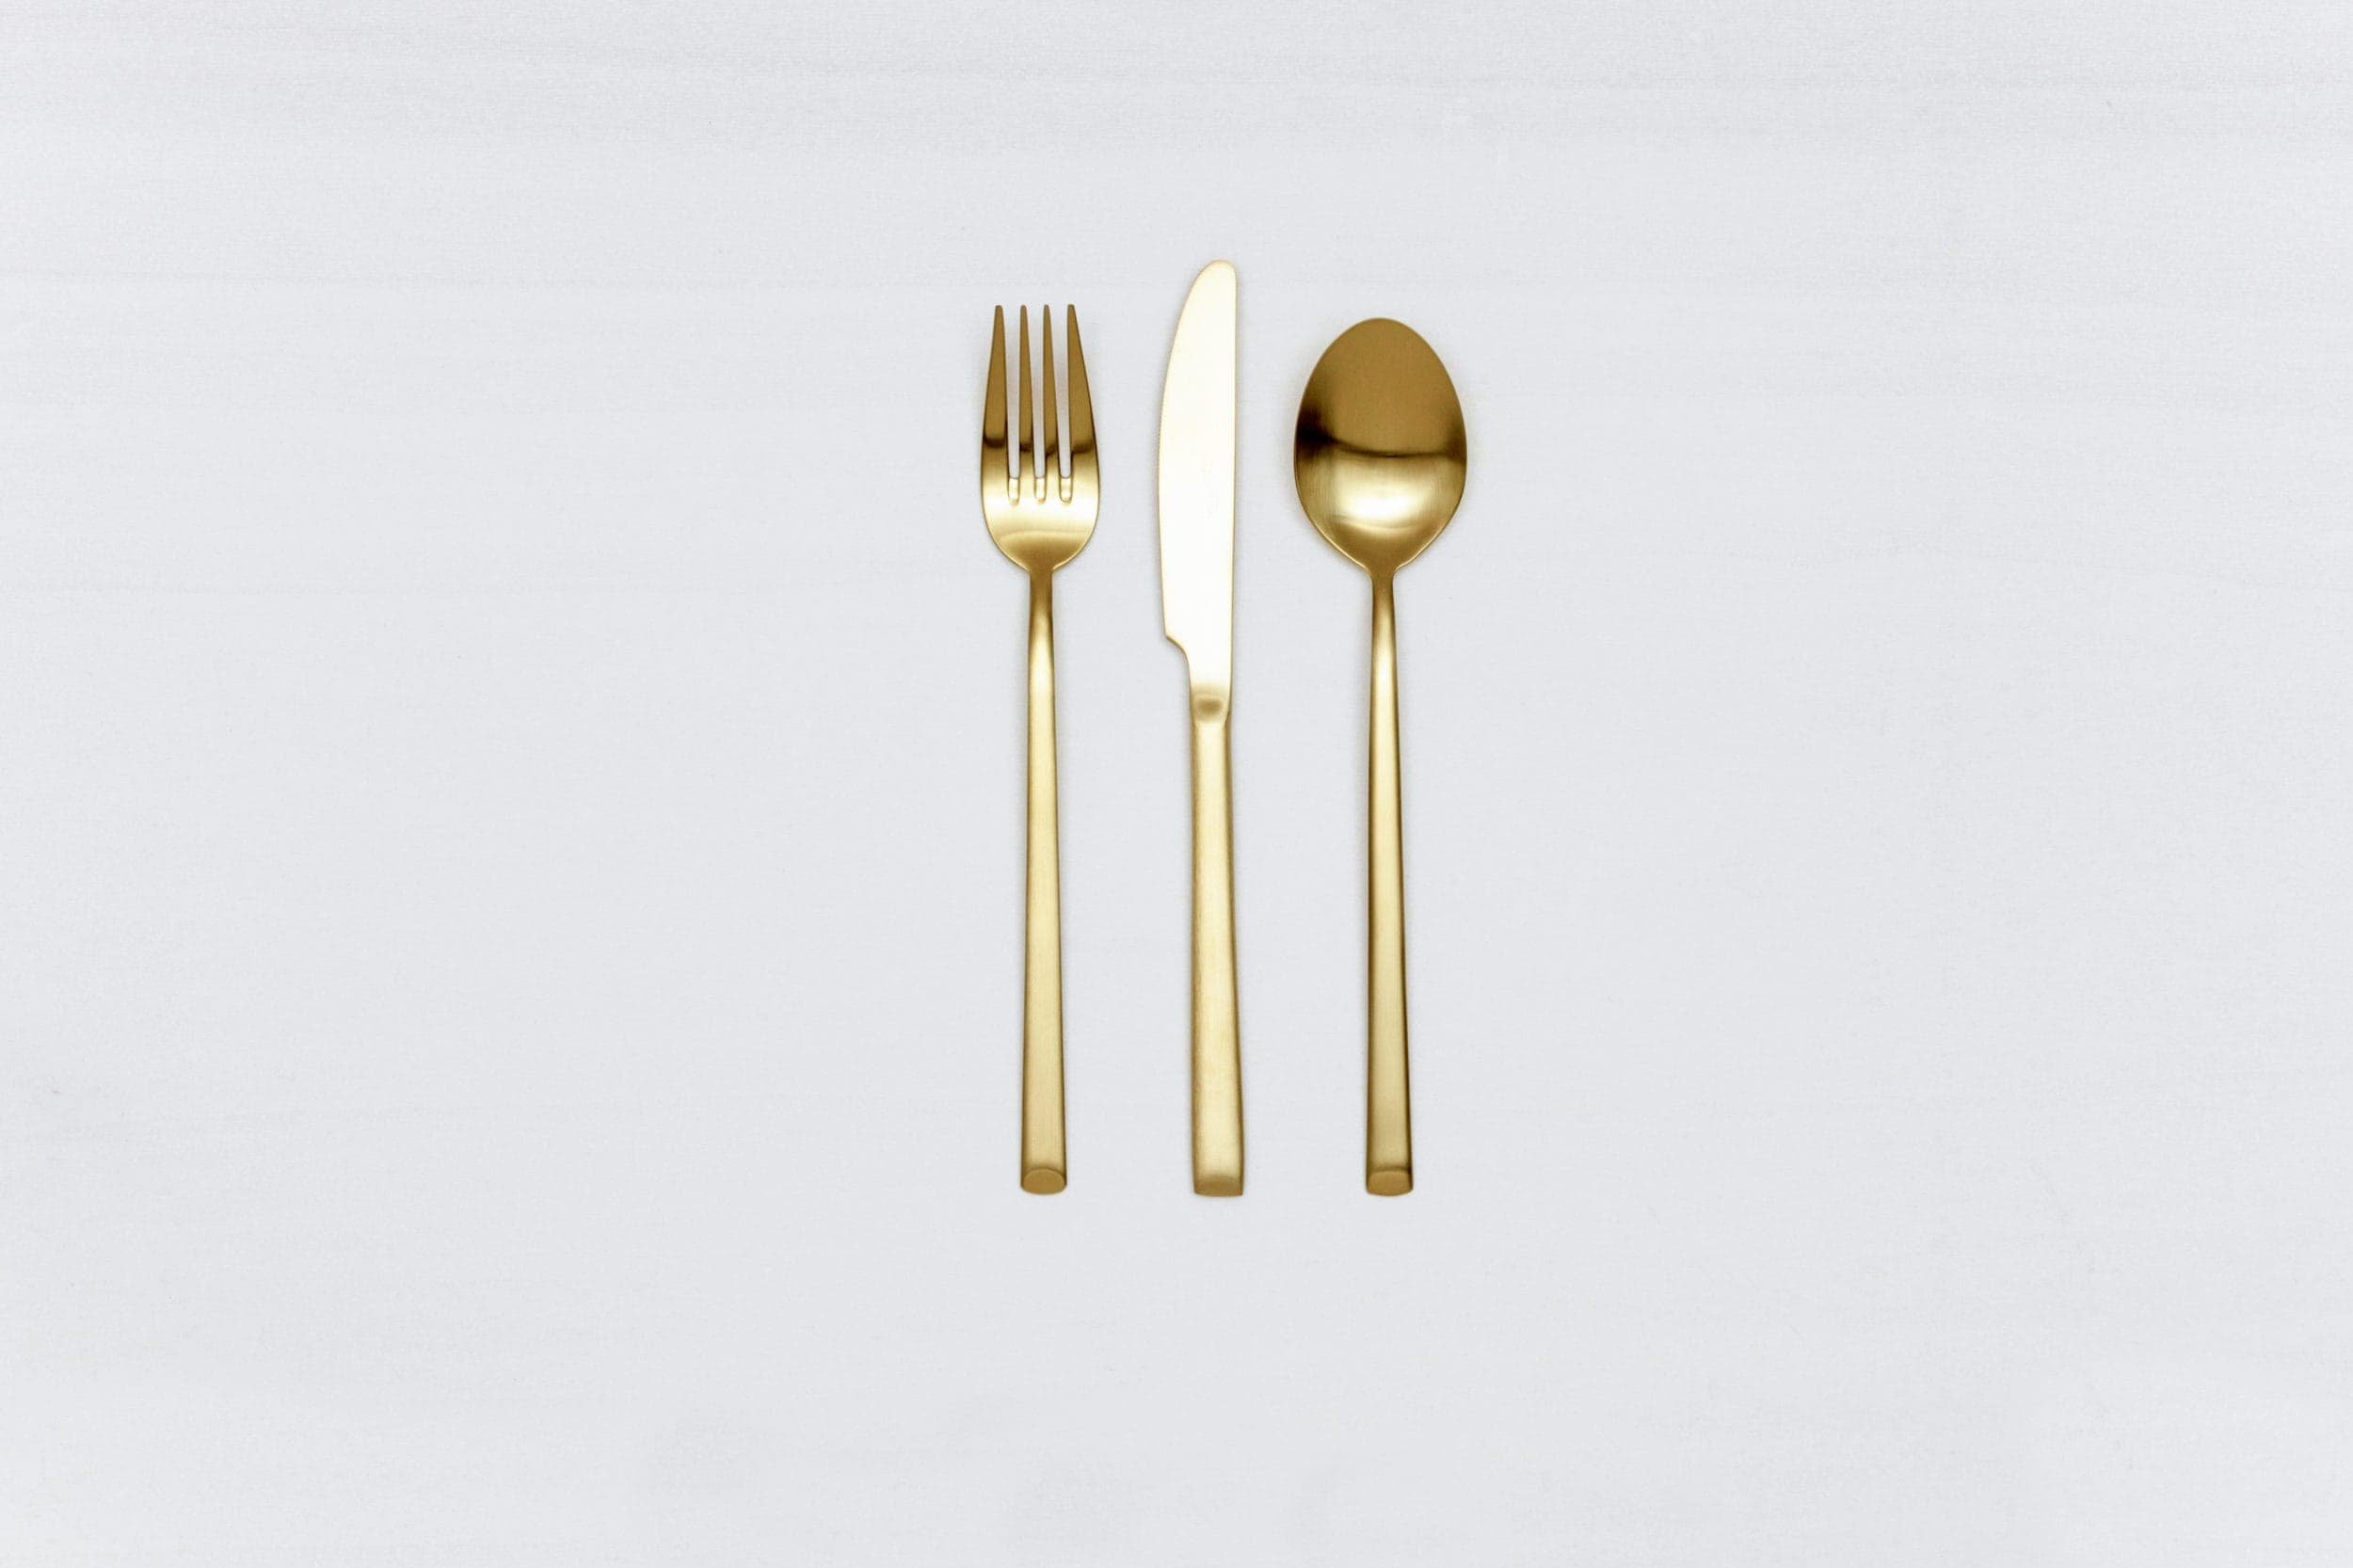 Dinner Knife Ines Cutlery Gold Matt | With the cutlery series Ines we rent out wonderful, matt-gold stainless steel cutlery. The cutlery has a wonderful haptic and looks equally good for different types of events. Whether on a colourful table setting combined with strong colours, an elegant, minimalistic wedding or a stylish business dinner - our matt gold cutlery Ines is an excellent choice for your event. Hire the dinner knive Ines to delight your guests with the special cutlery. Matching the matt gold dinner knive Ines, we also offer starter forks, starter knives, dinner forks, as well as table spoons, teaspoons and last but not least, cake shovels, serving spoons and butter shovels for rent. | gotvintage Rental & Event Design